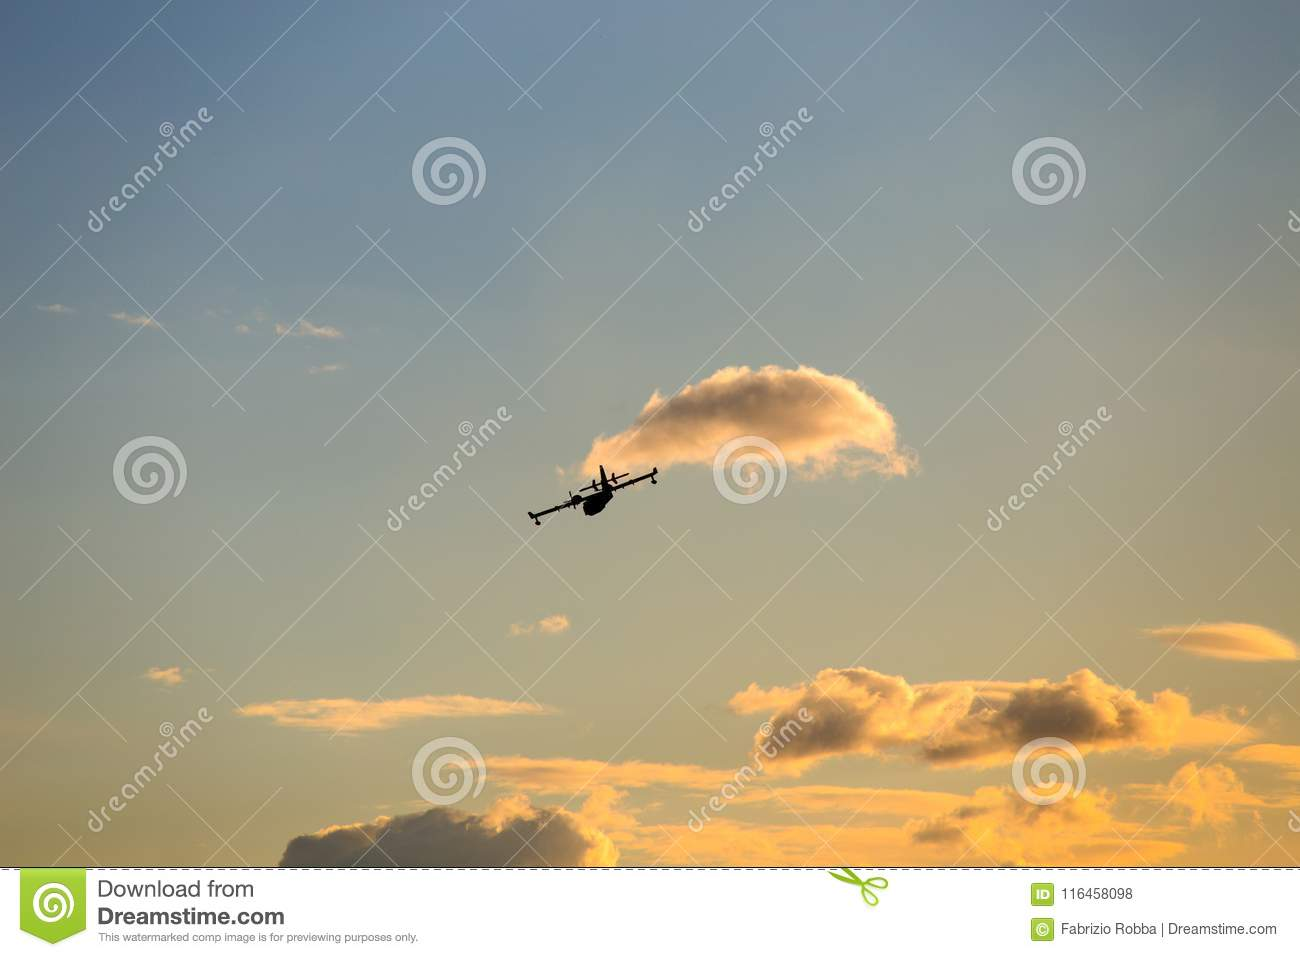 Aircraft silhouette flyes in the sky through the clouds at sunset